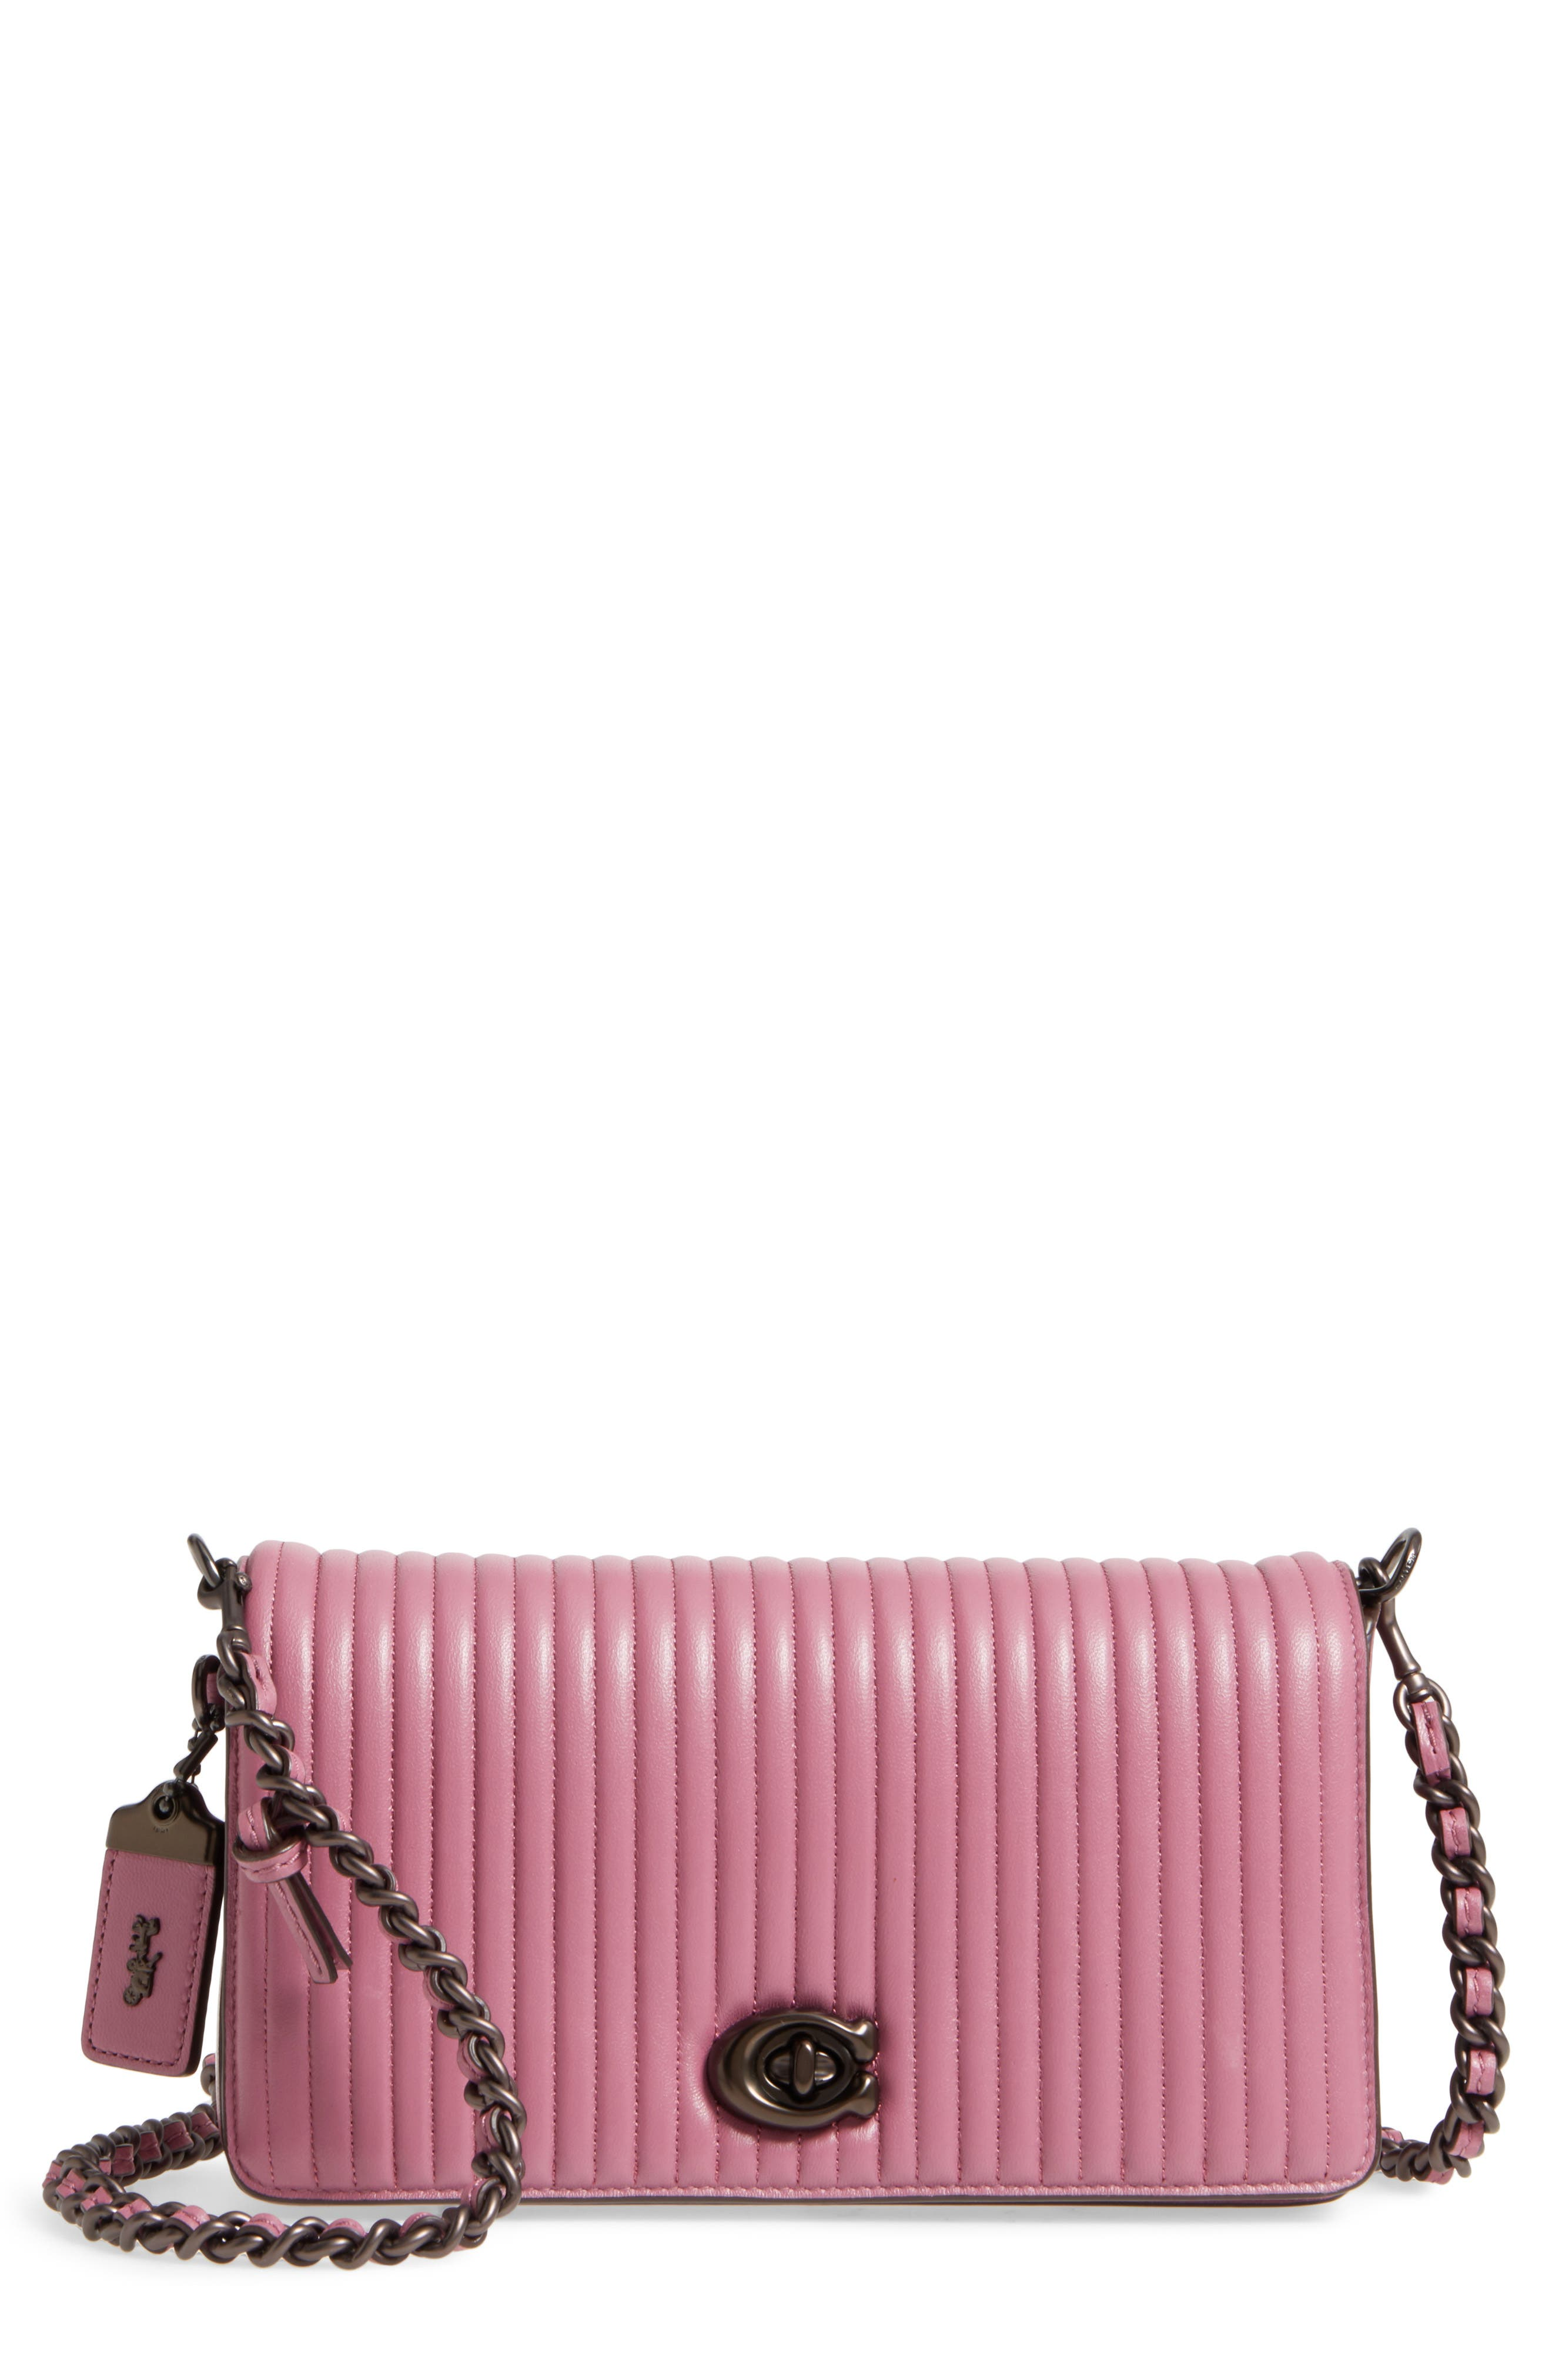 Alternate Image 1 Selected - COACH 1941 Dinky Quilted Leather Crossbody Bag